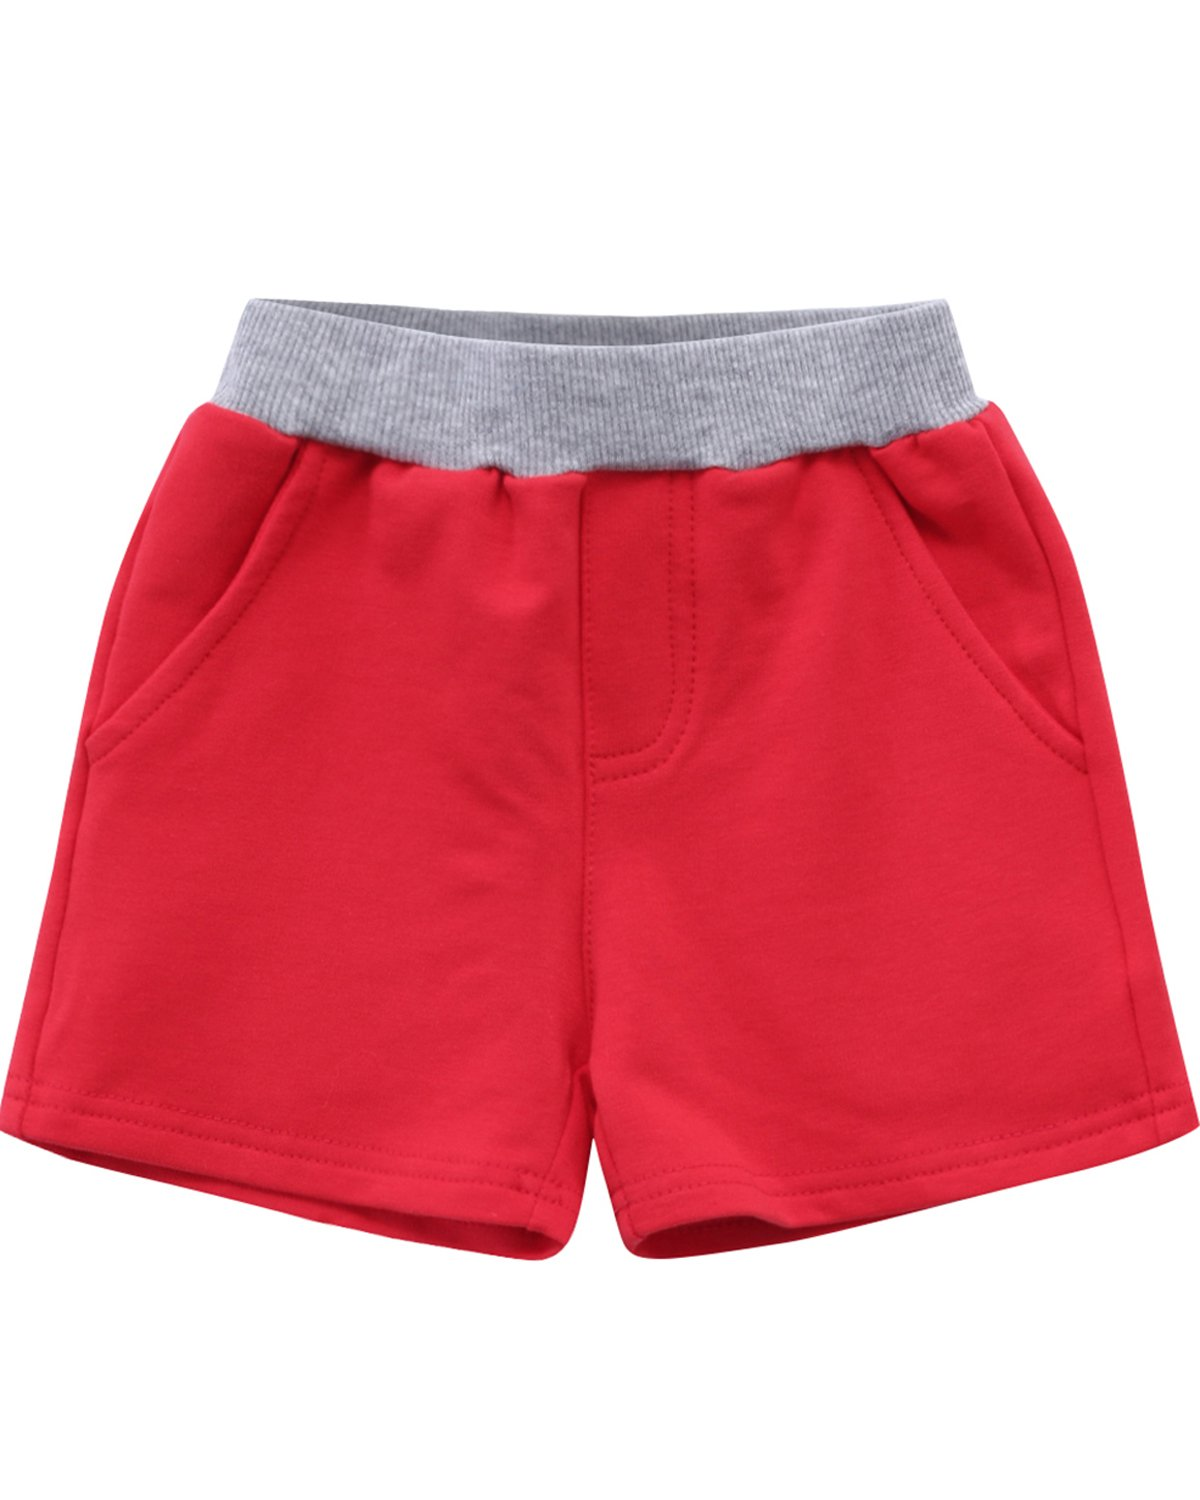 Kidsform Baby Shorts Childrens Short Pants Cotton Sports Pants with Pocket Summer Trunks 1-5 Years KIDSFORMyonnciiuk8845